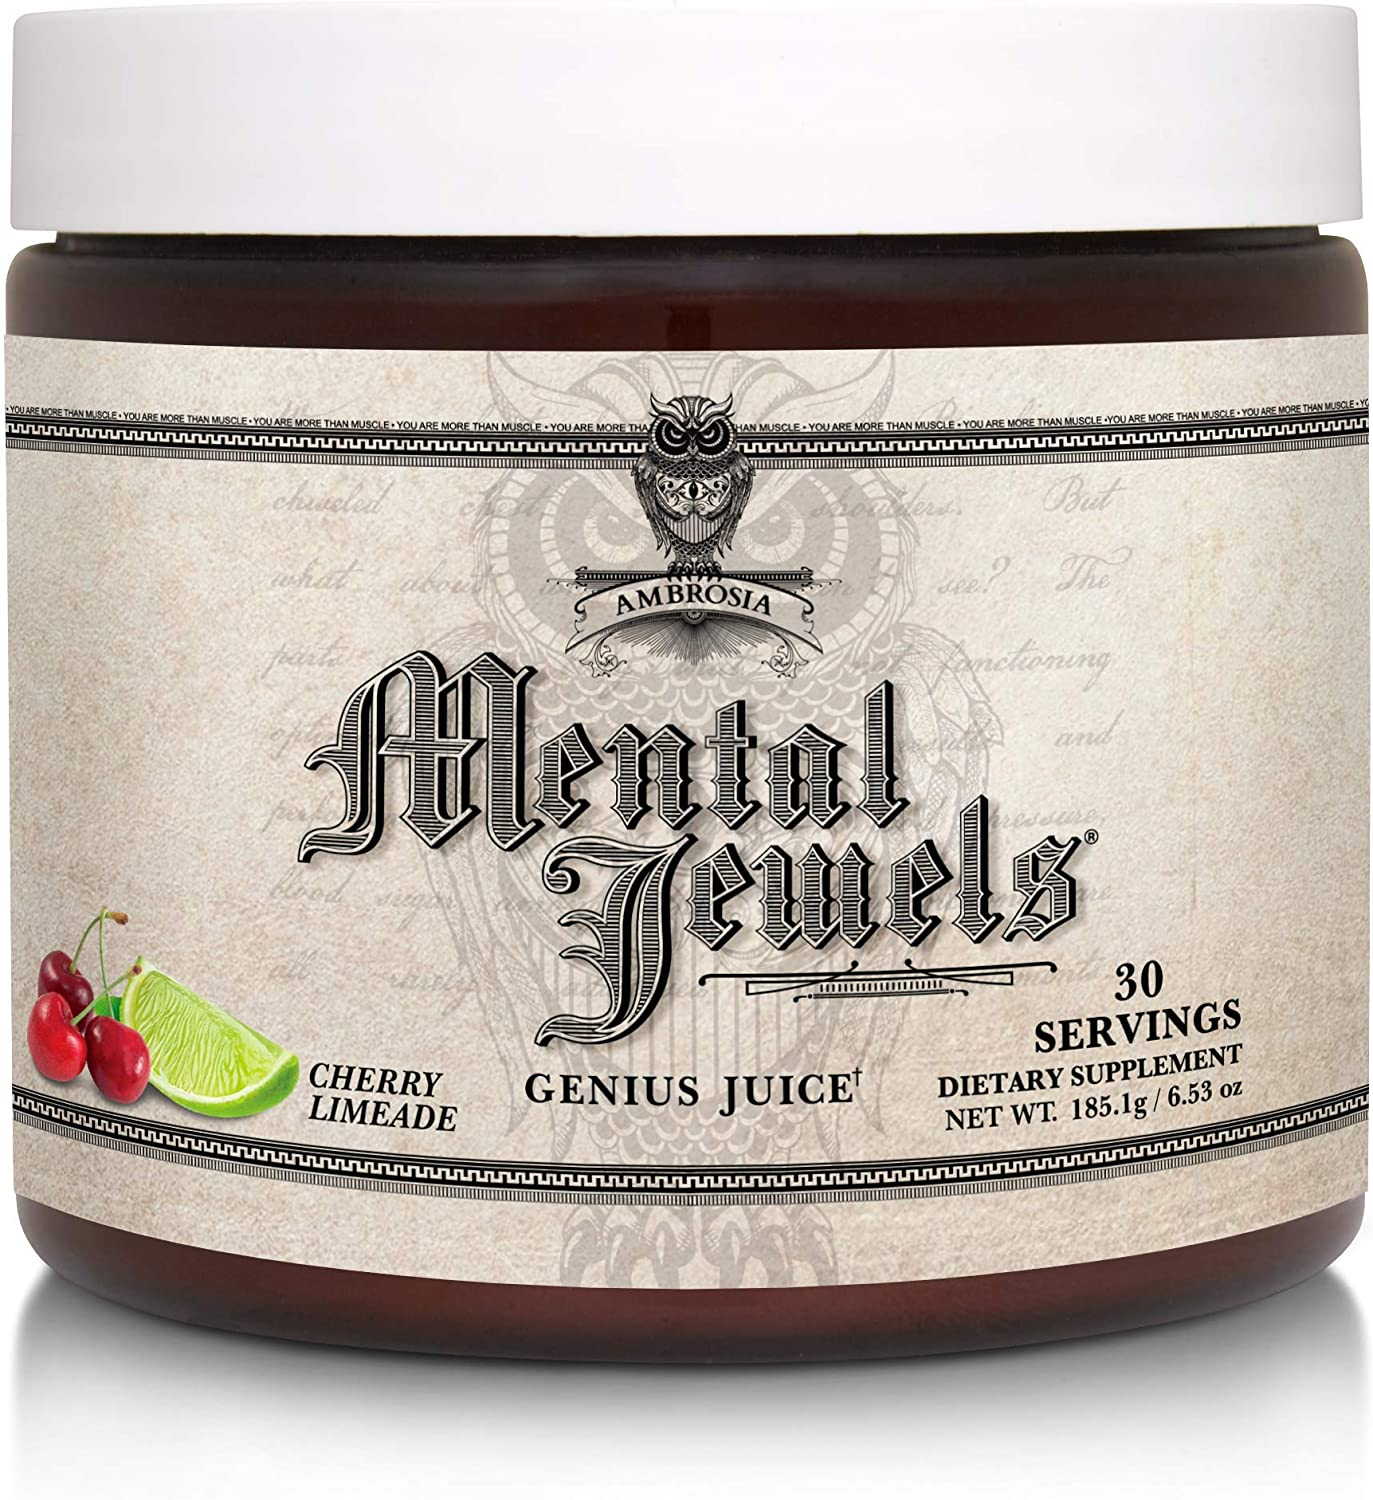 Ambrosia Mental Jewels Powder - Cognitive Enhancer | Increase Memory, Communication Skills, Concentration & Focus | Decrease Reaction Time | Alpha GPC, Choline, BaCognize | 30 Servings| Cherry Limeade